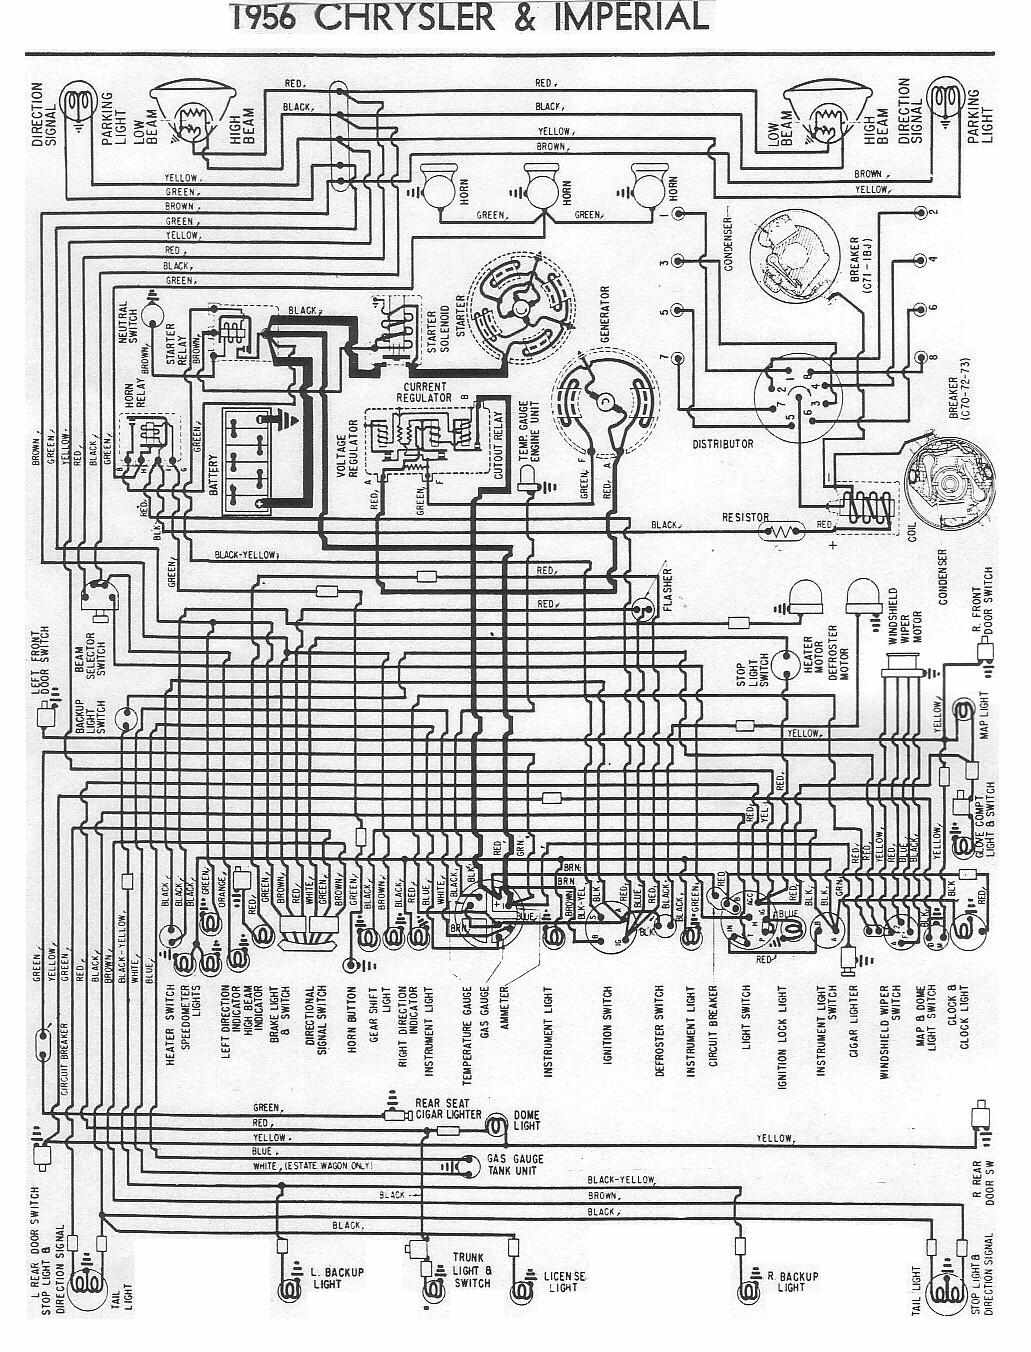 wiring diagram of 1956 chrysler and imperial circuit wiring wiring 1956 chrysler wiring diagram [ 1031 x 1352 Pixel ]